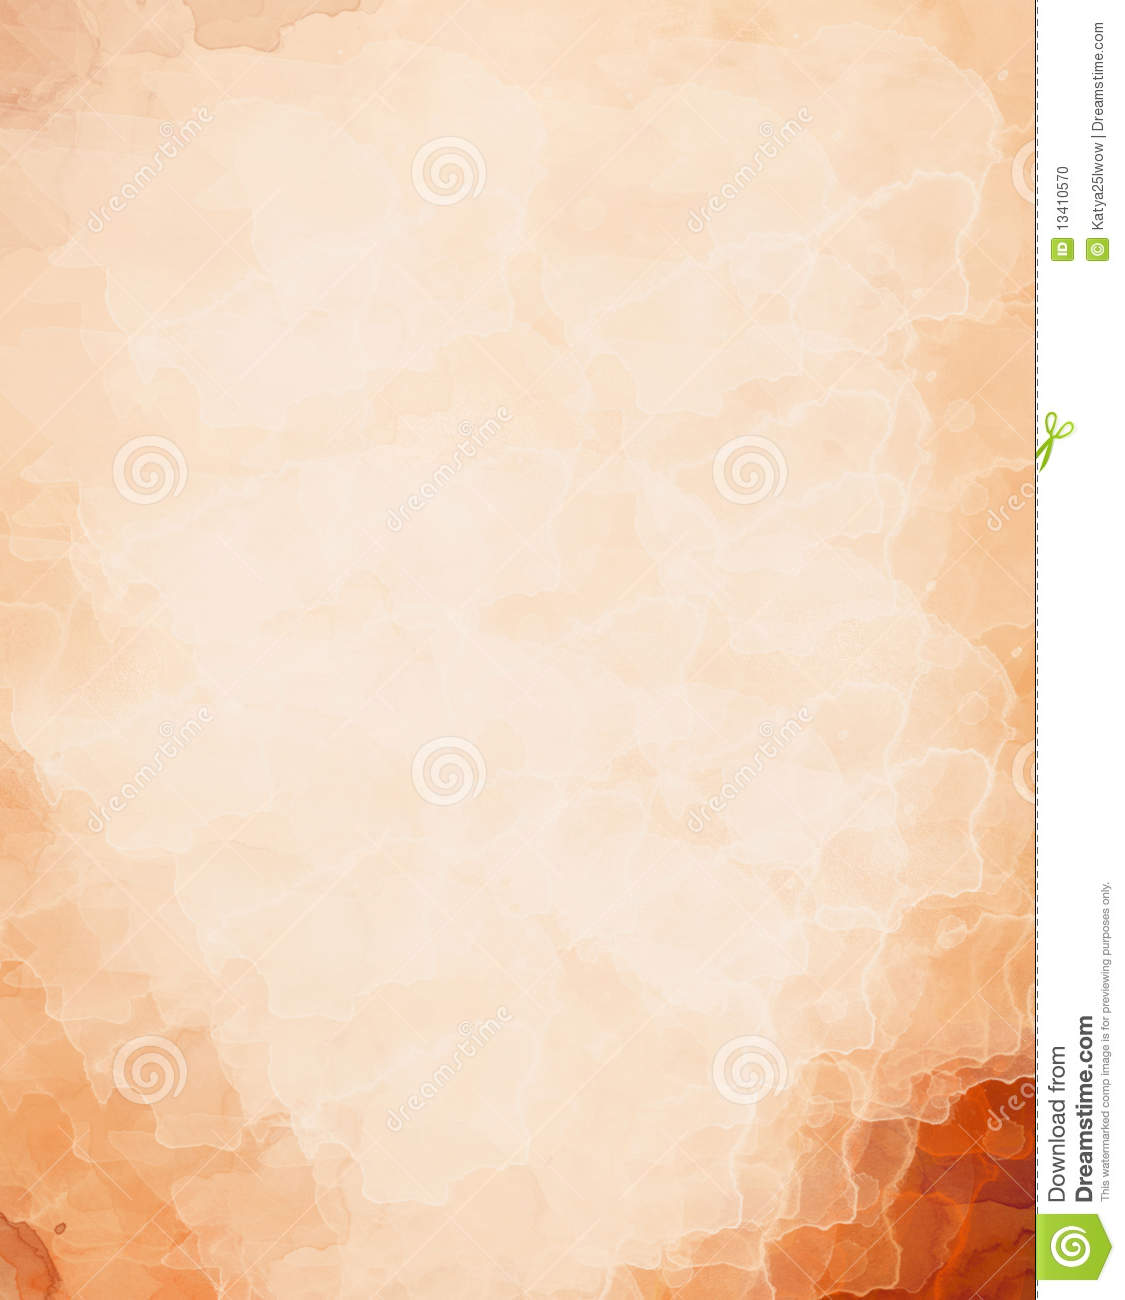 Background Beige Texture Stock Illustration Image Of Page